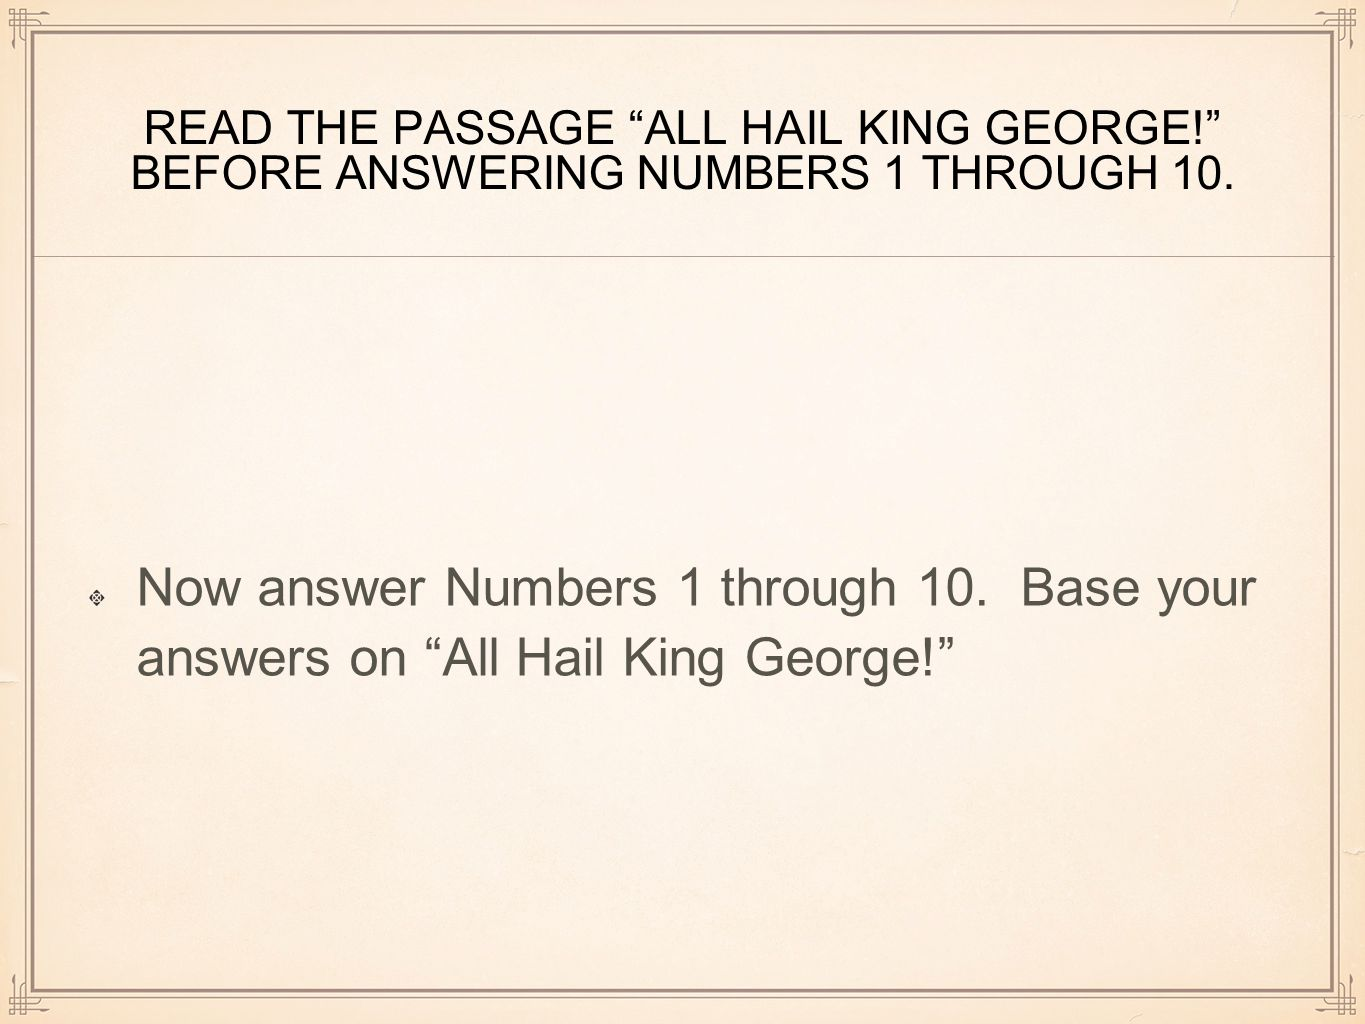 READ THE PASSAGE ALL HAIL KING GEORGE